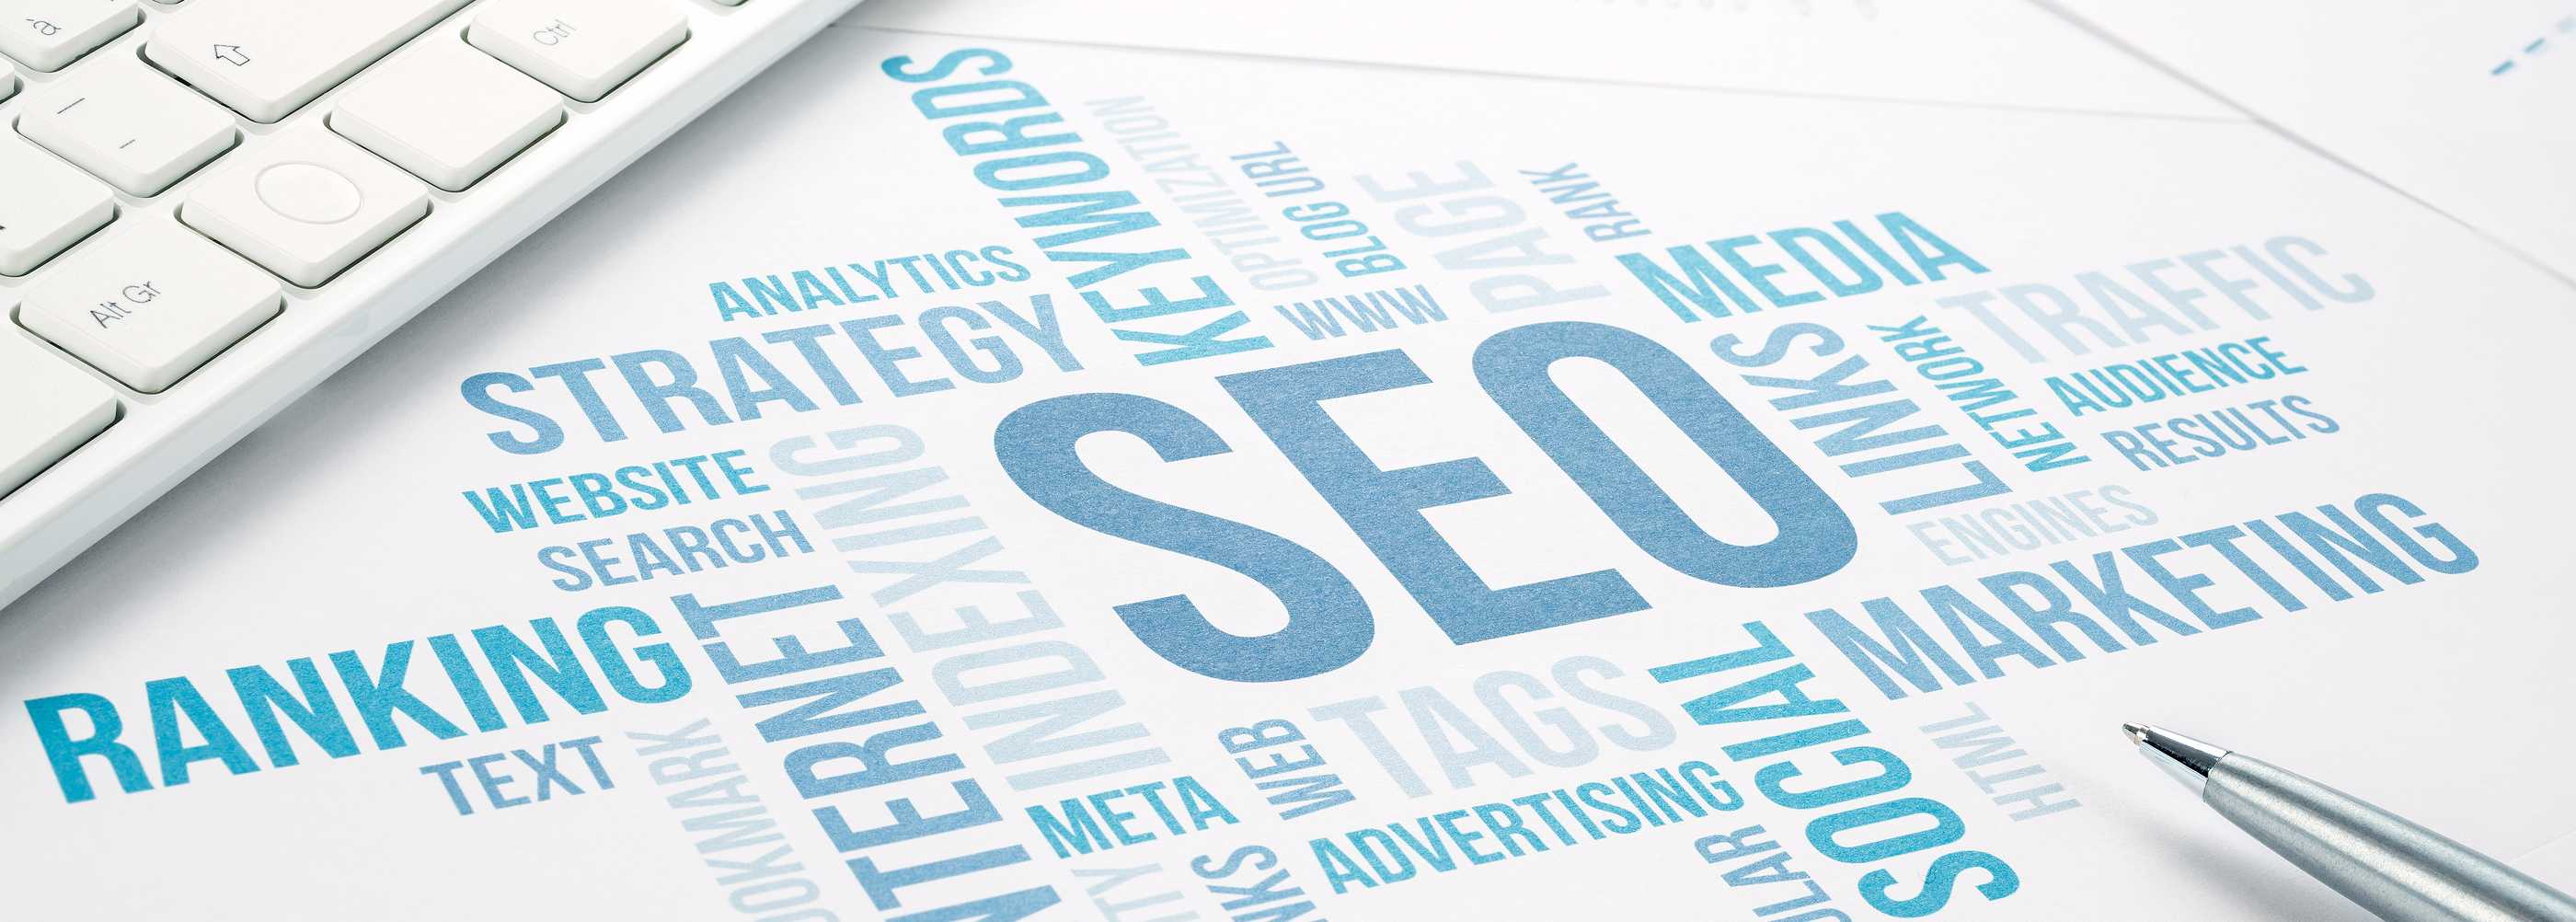 What Is A SEO Company?